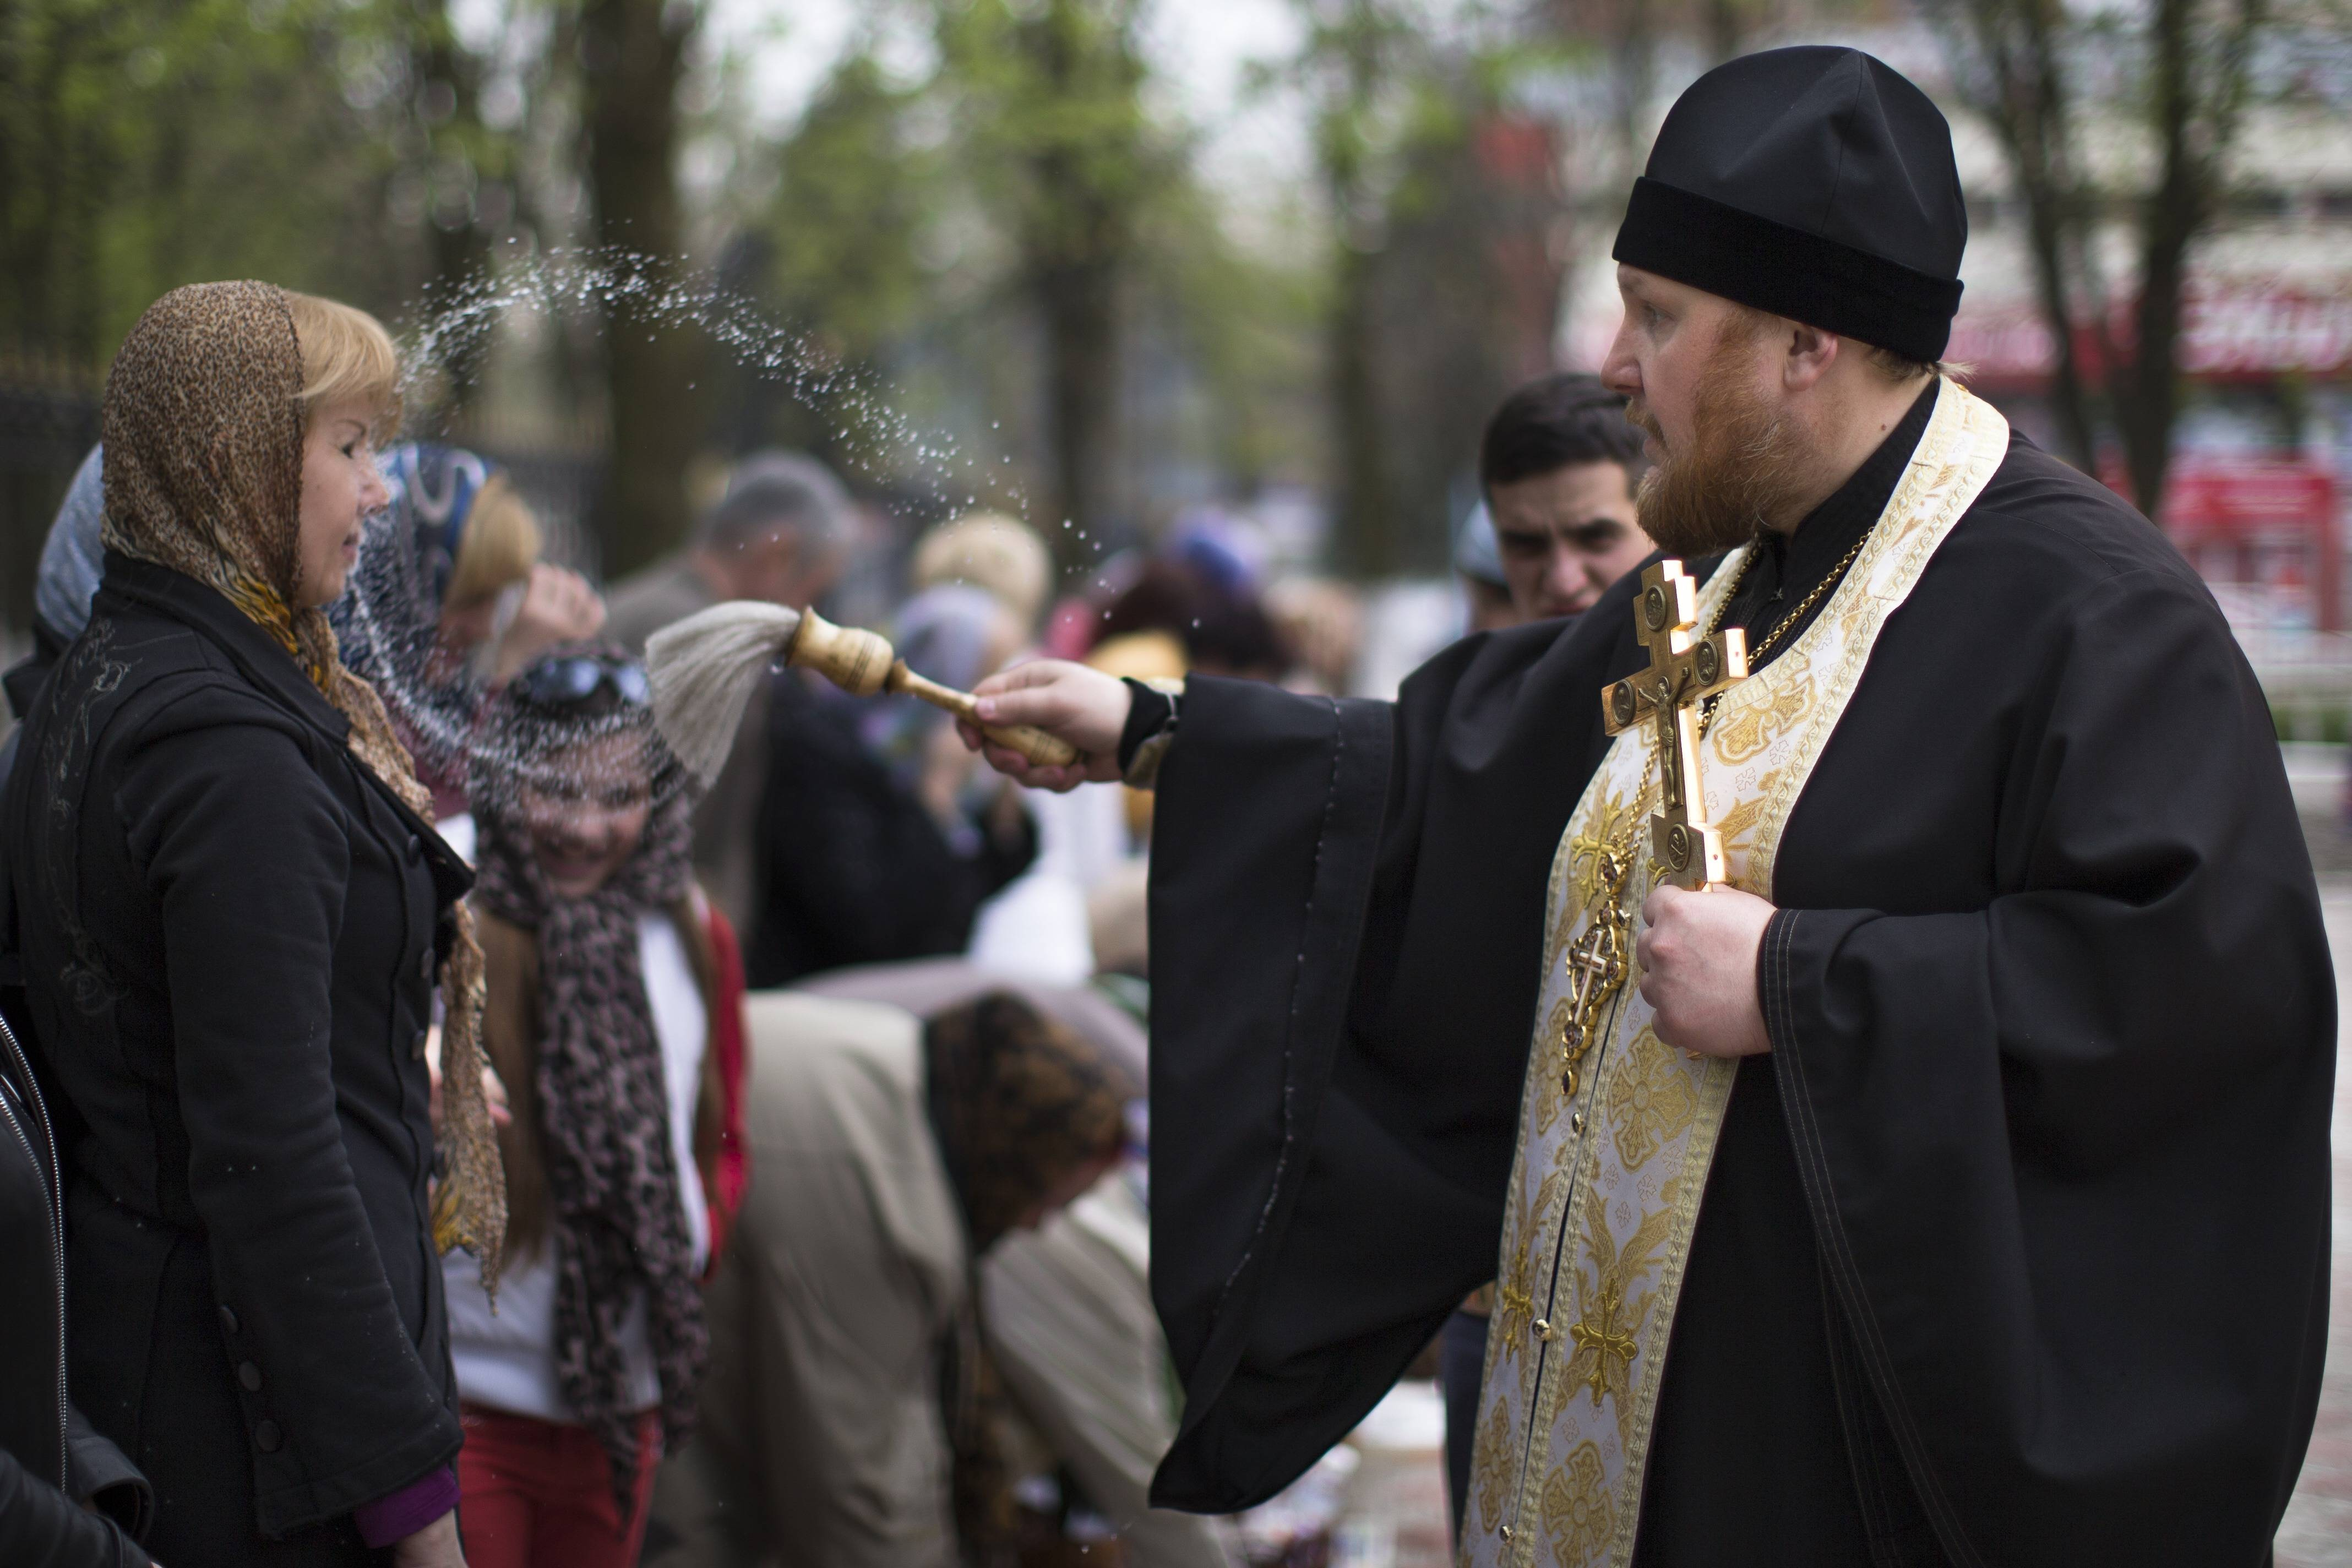 An Orthodox priest blesses a woman and traditional Easter cakes and painted eggs prepared for an Easter celebration, at a church in Slovyansk, Ukraine, Saturday, April 19. Pro-Russian insurgents defiantly refused Friday to surrender their weapons or give up government buildings in eastern Ukraine, despite a diplomatic accord reached in Geneva and overtures from the government in Kiev.